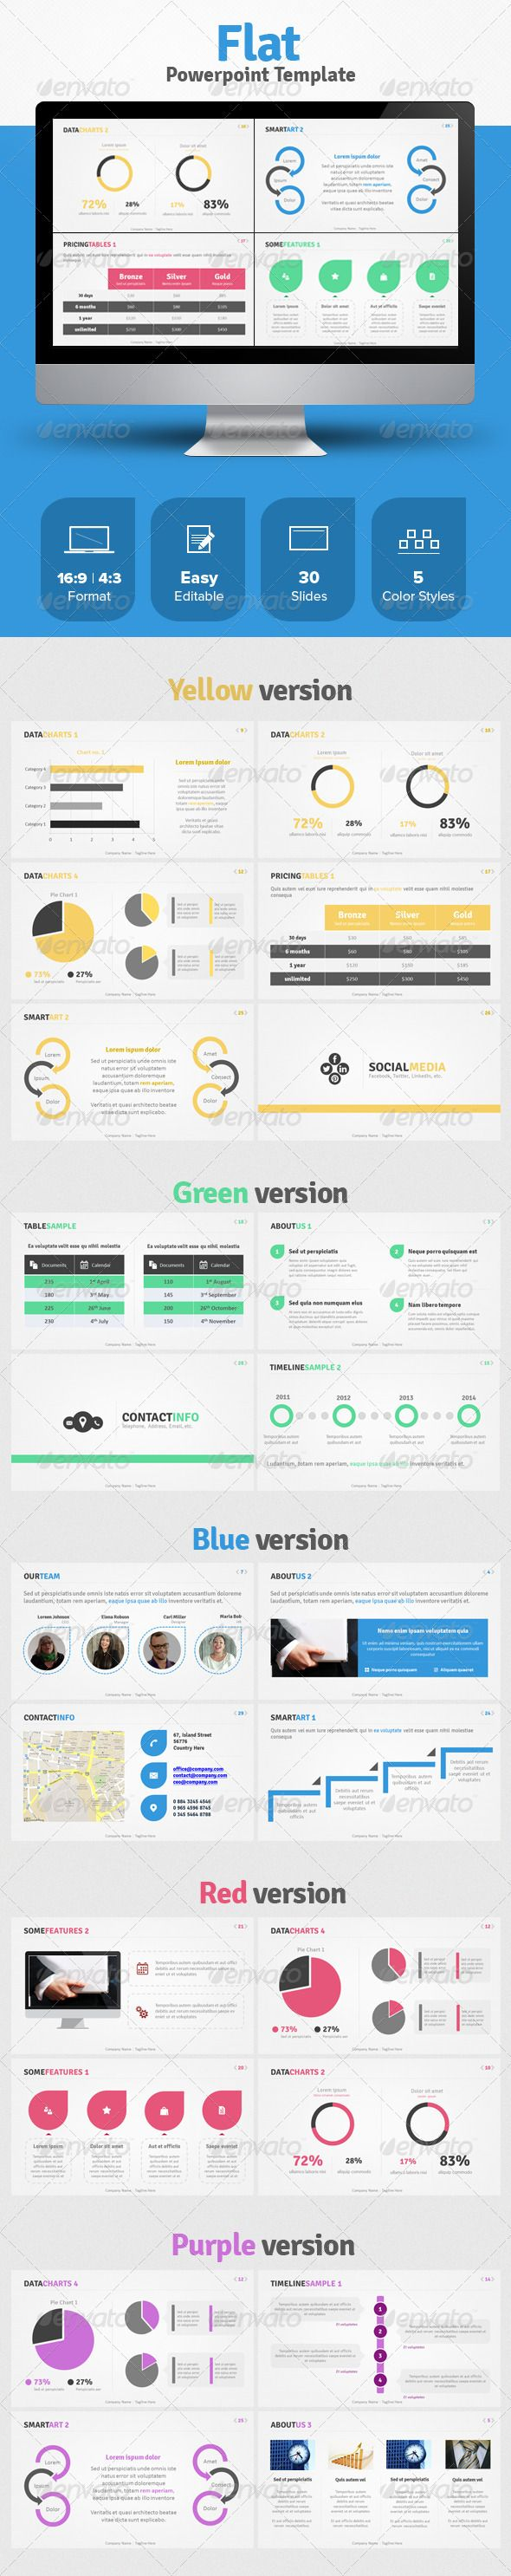 Flat Powerpoint Template :  Check out this great #graphicriver item 'Flat Powerpoint Template' http://graphicriver.net/item/flat-powerpoint-template/5871587?ref=25EGY